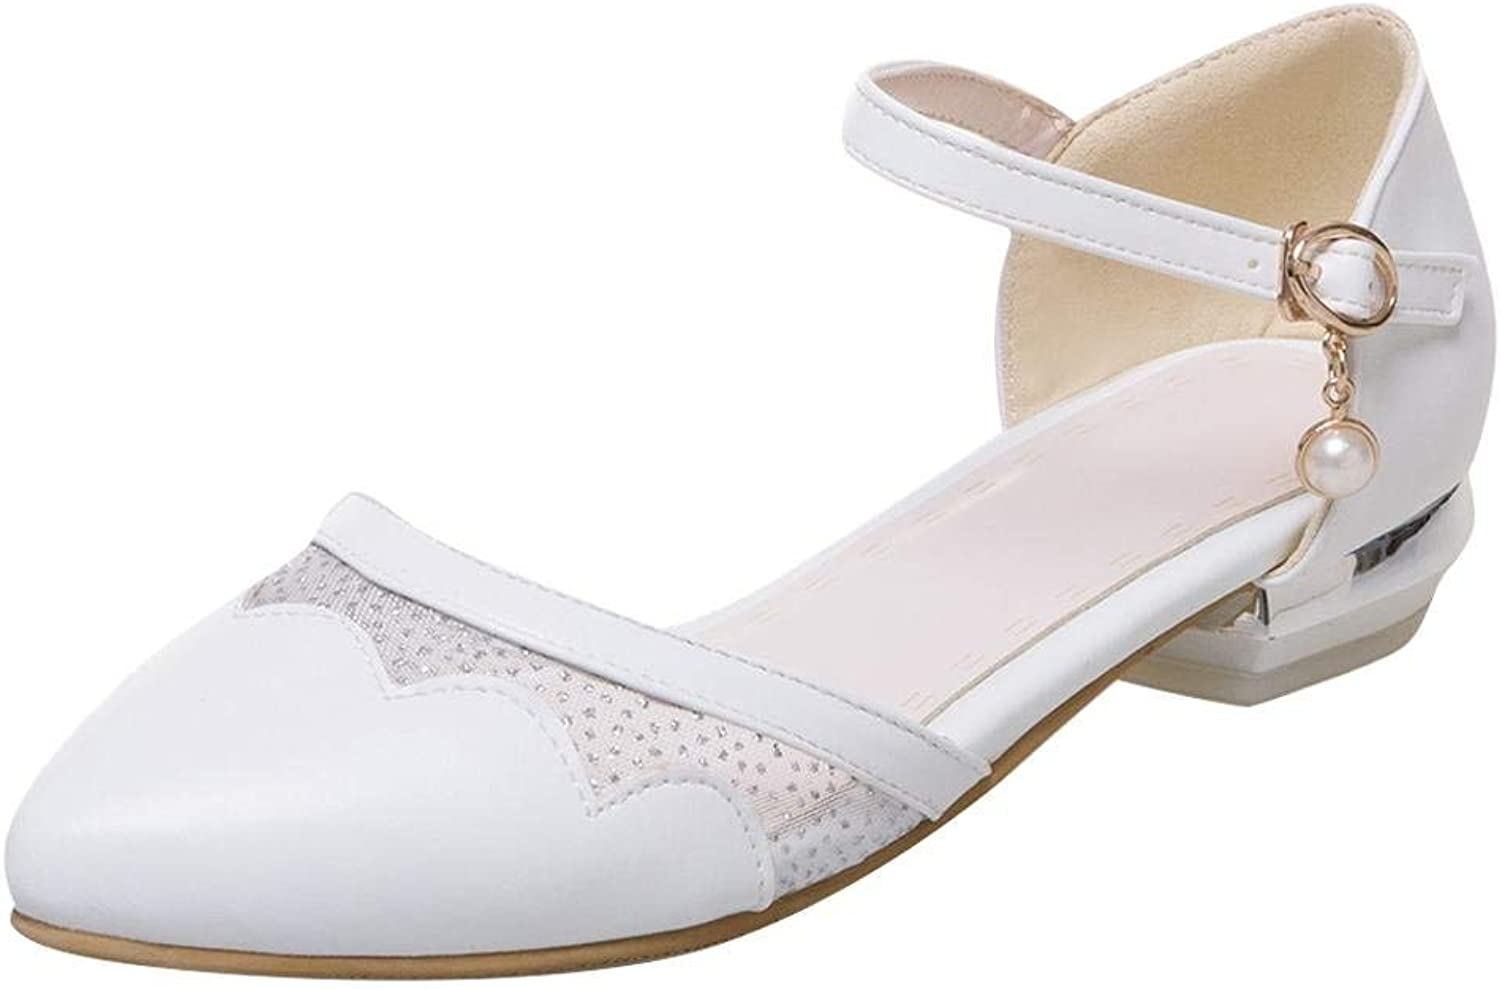 Ghssheh Women's Sweet Mesh Low Heel Ankle Strap Buckle Pump shoes White 8 M US